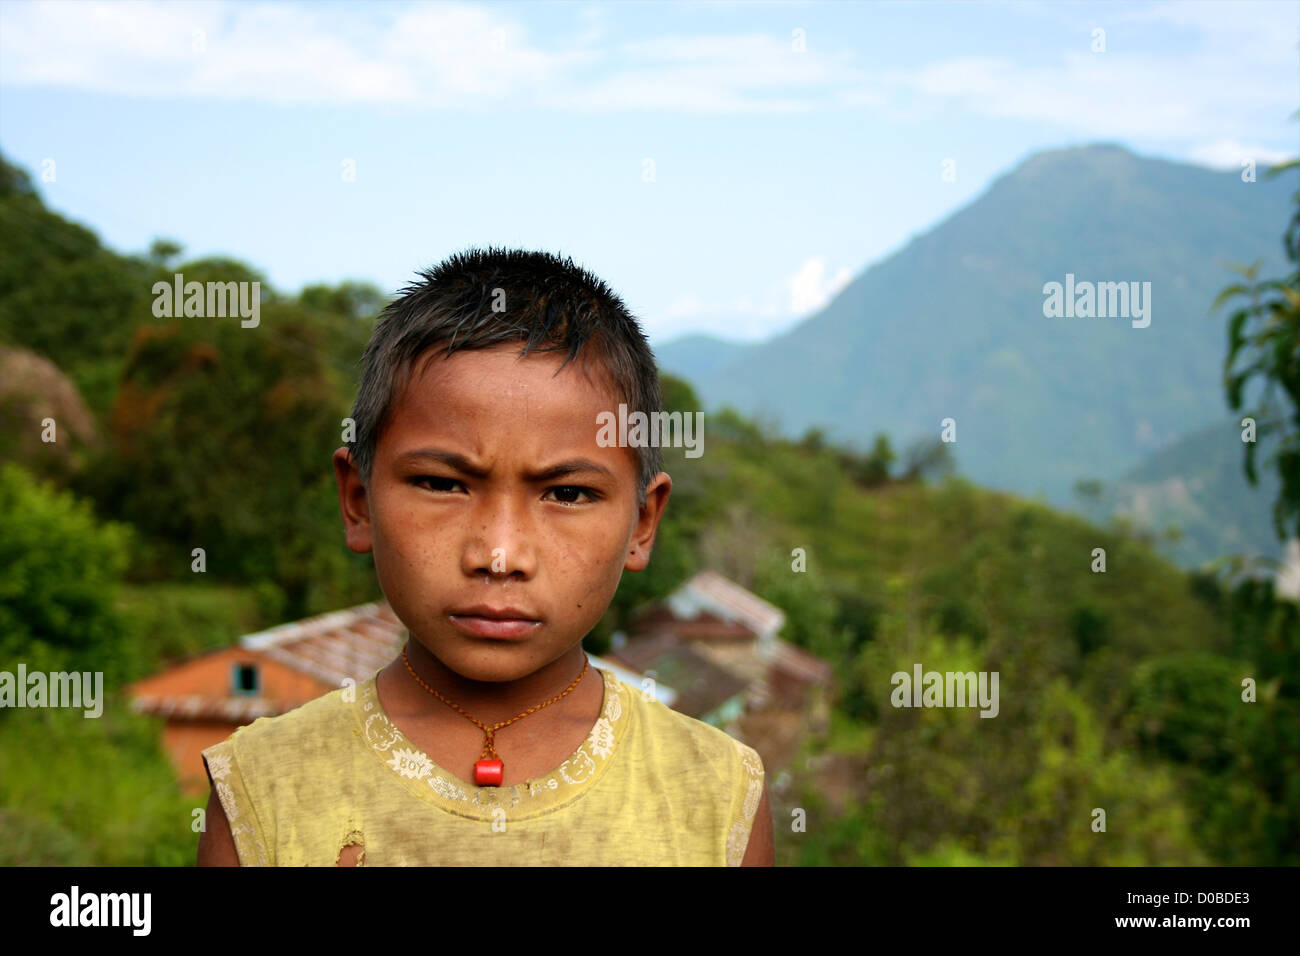 Nepali boy in remote village in Helambu region, Nepal - Stock Image